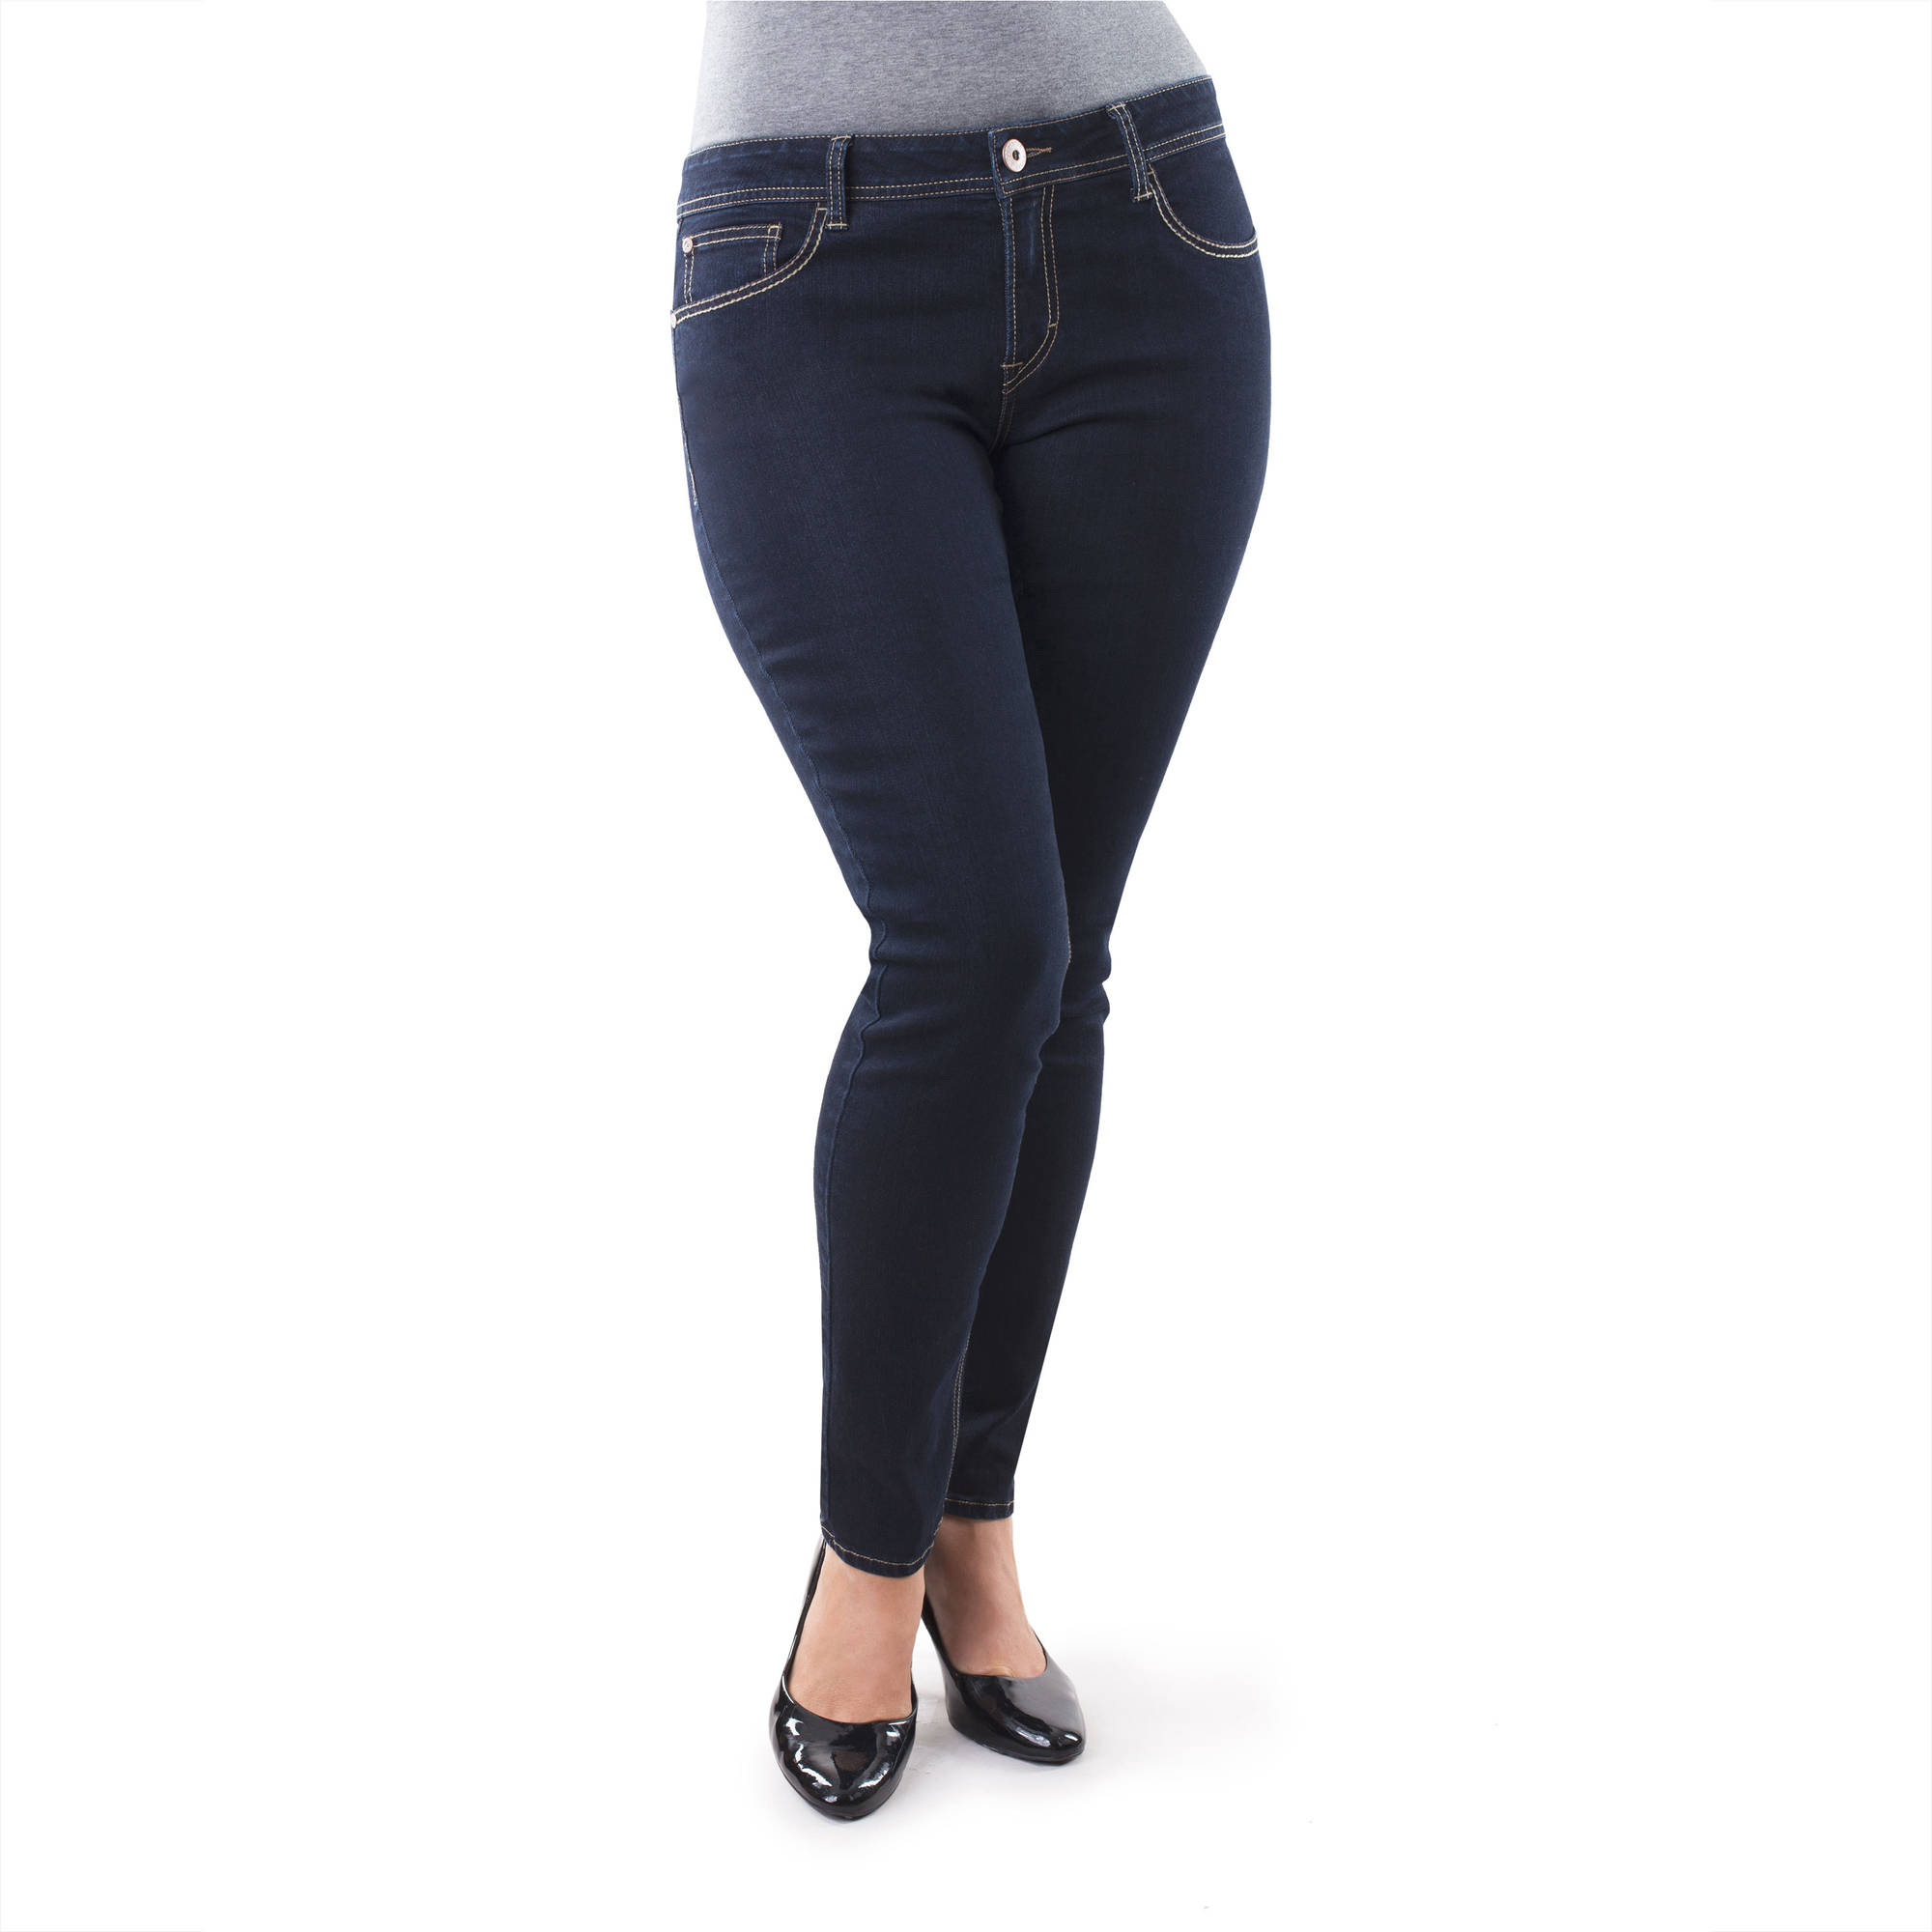 Jordache Women's Plus-Size Skinny Jeans, Available in Regular and Petite Lengths